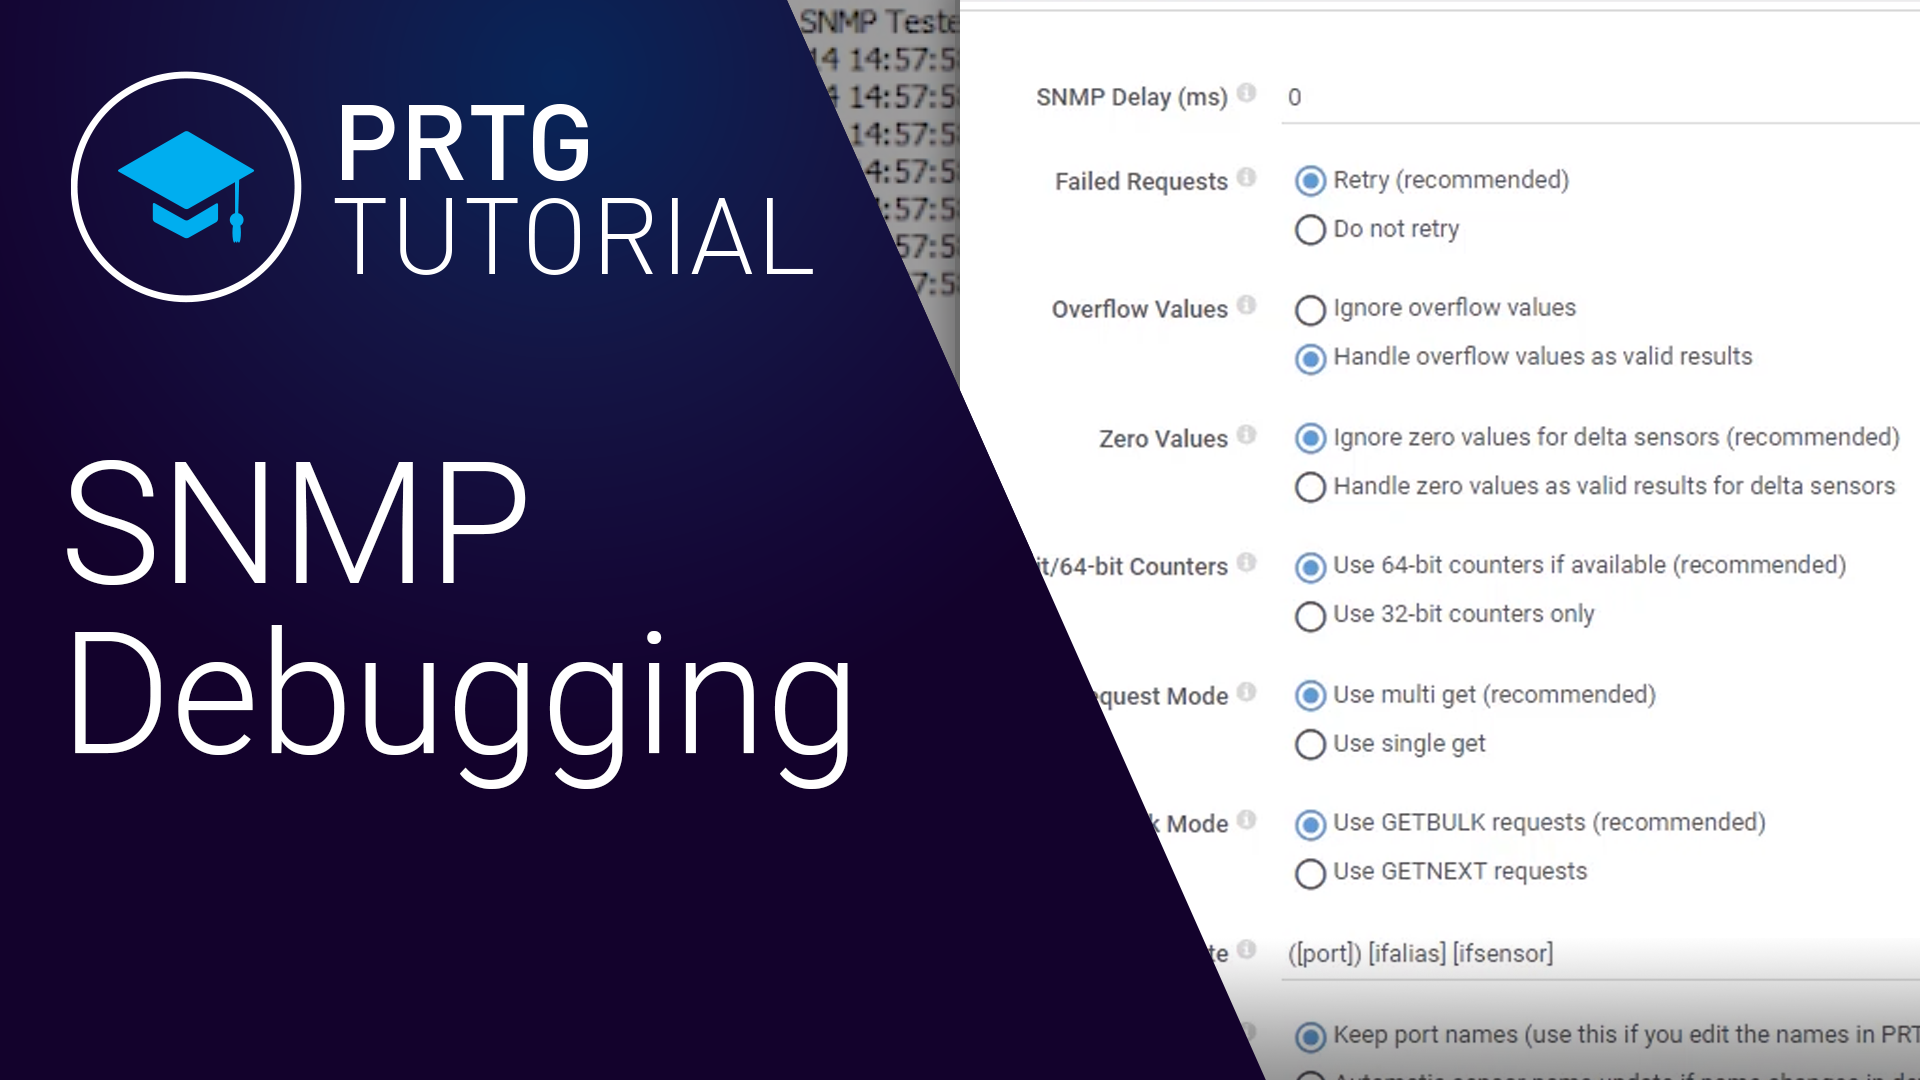 Video: PRTG - SNMP Debugging (Videos, SNMP)